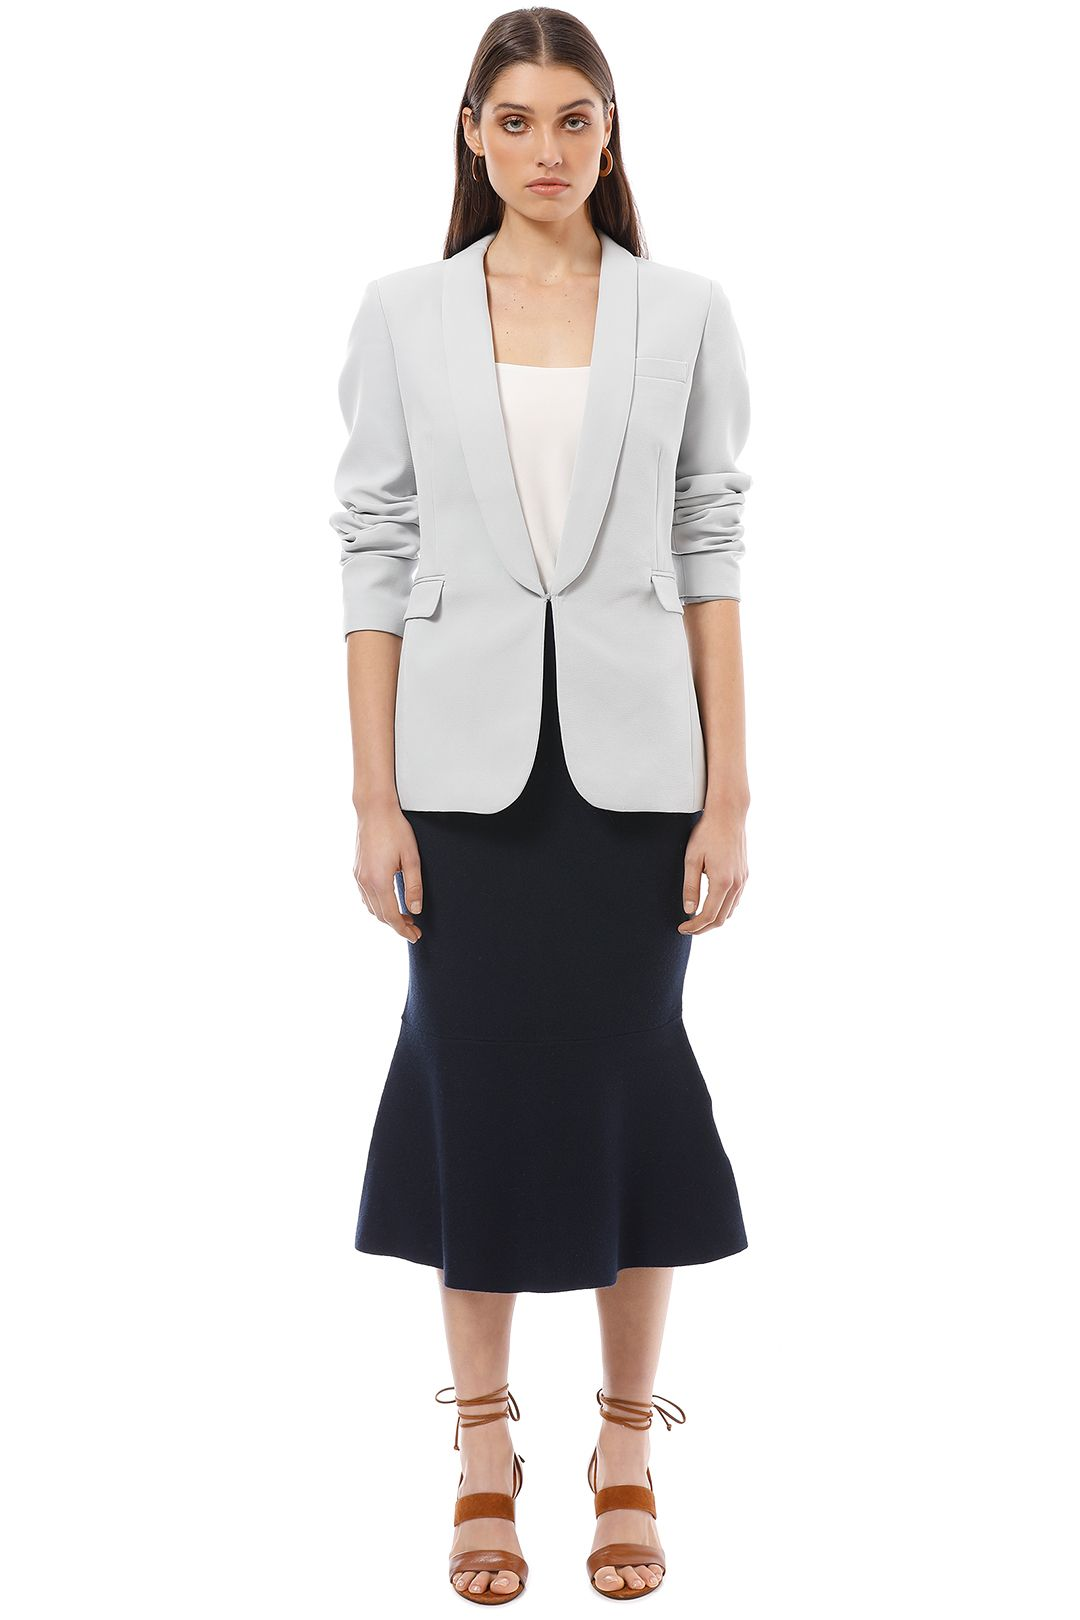 Friend of Audrey - Alma Fitted Blazer - Blue - Front